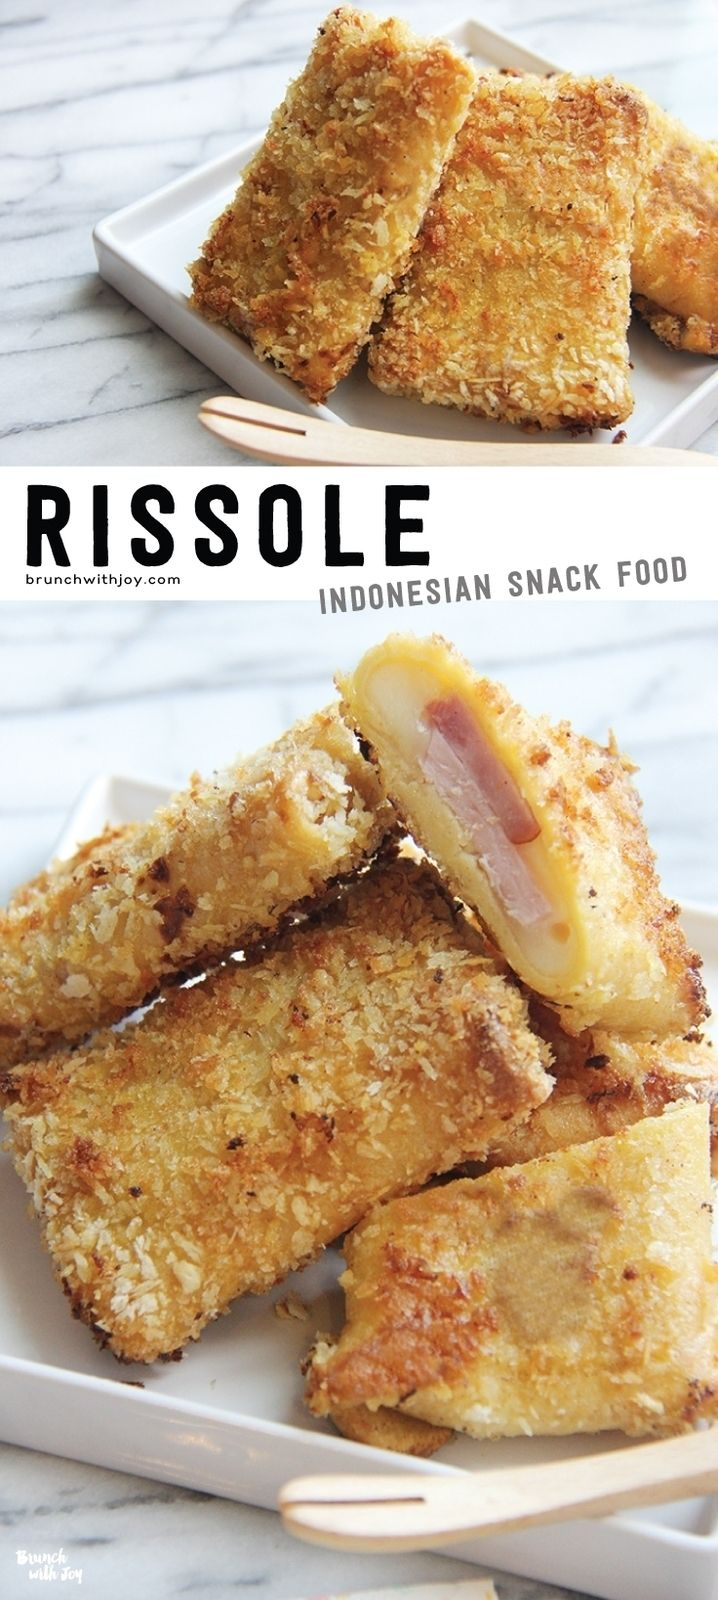 Use up your leftover ham and eggs from Easter by making this yummy rissole (#risoles). Say goodbye to boring leftovers for lunch! #SundaySupper